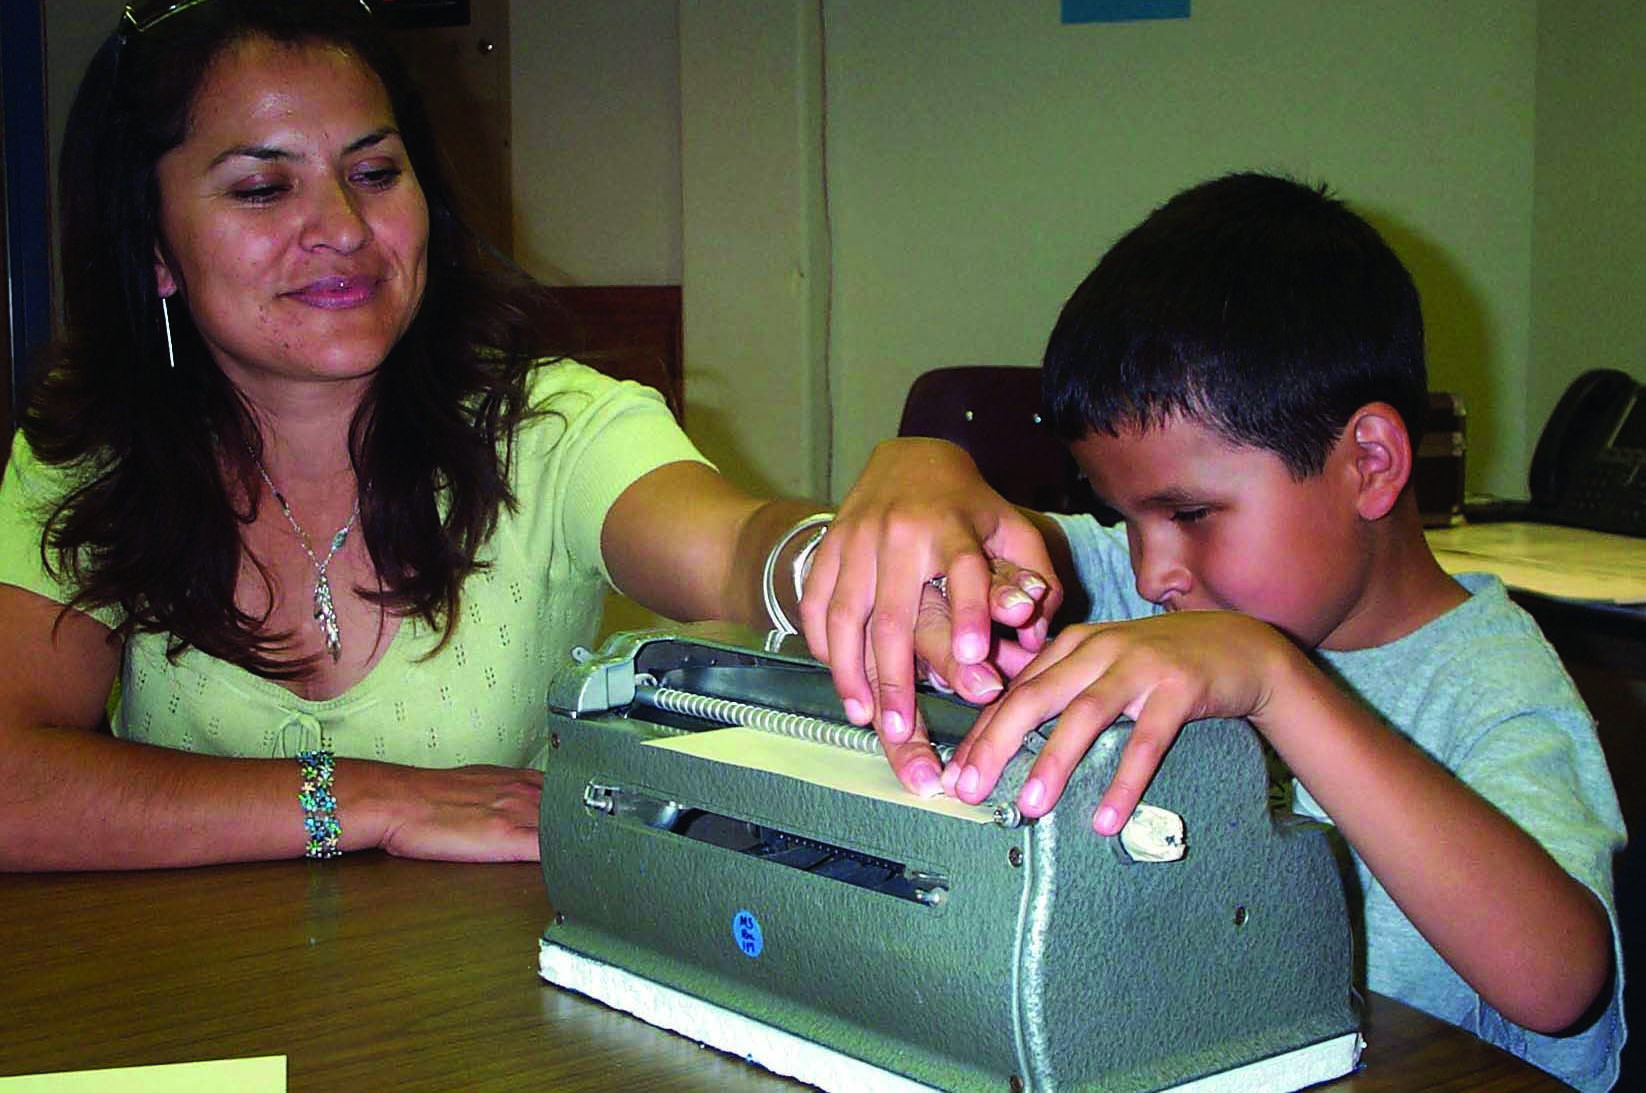 A Hispanic school-age boy takes his mother's hand to show her what he has brailled on his Perkins braillewriter.